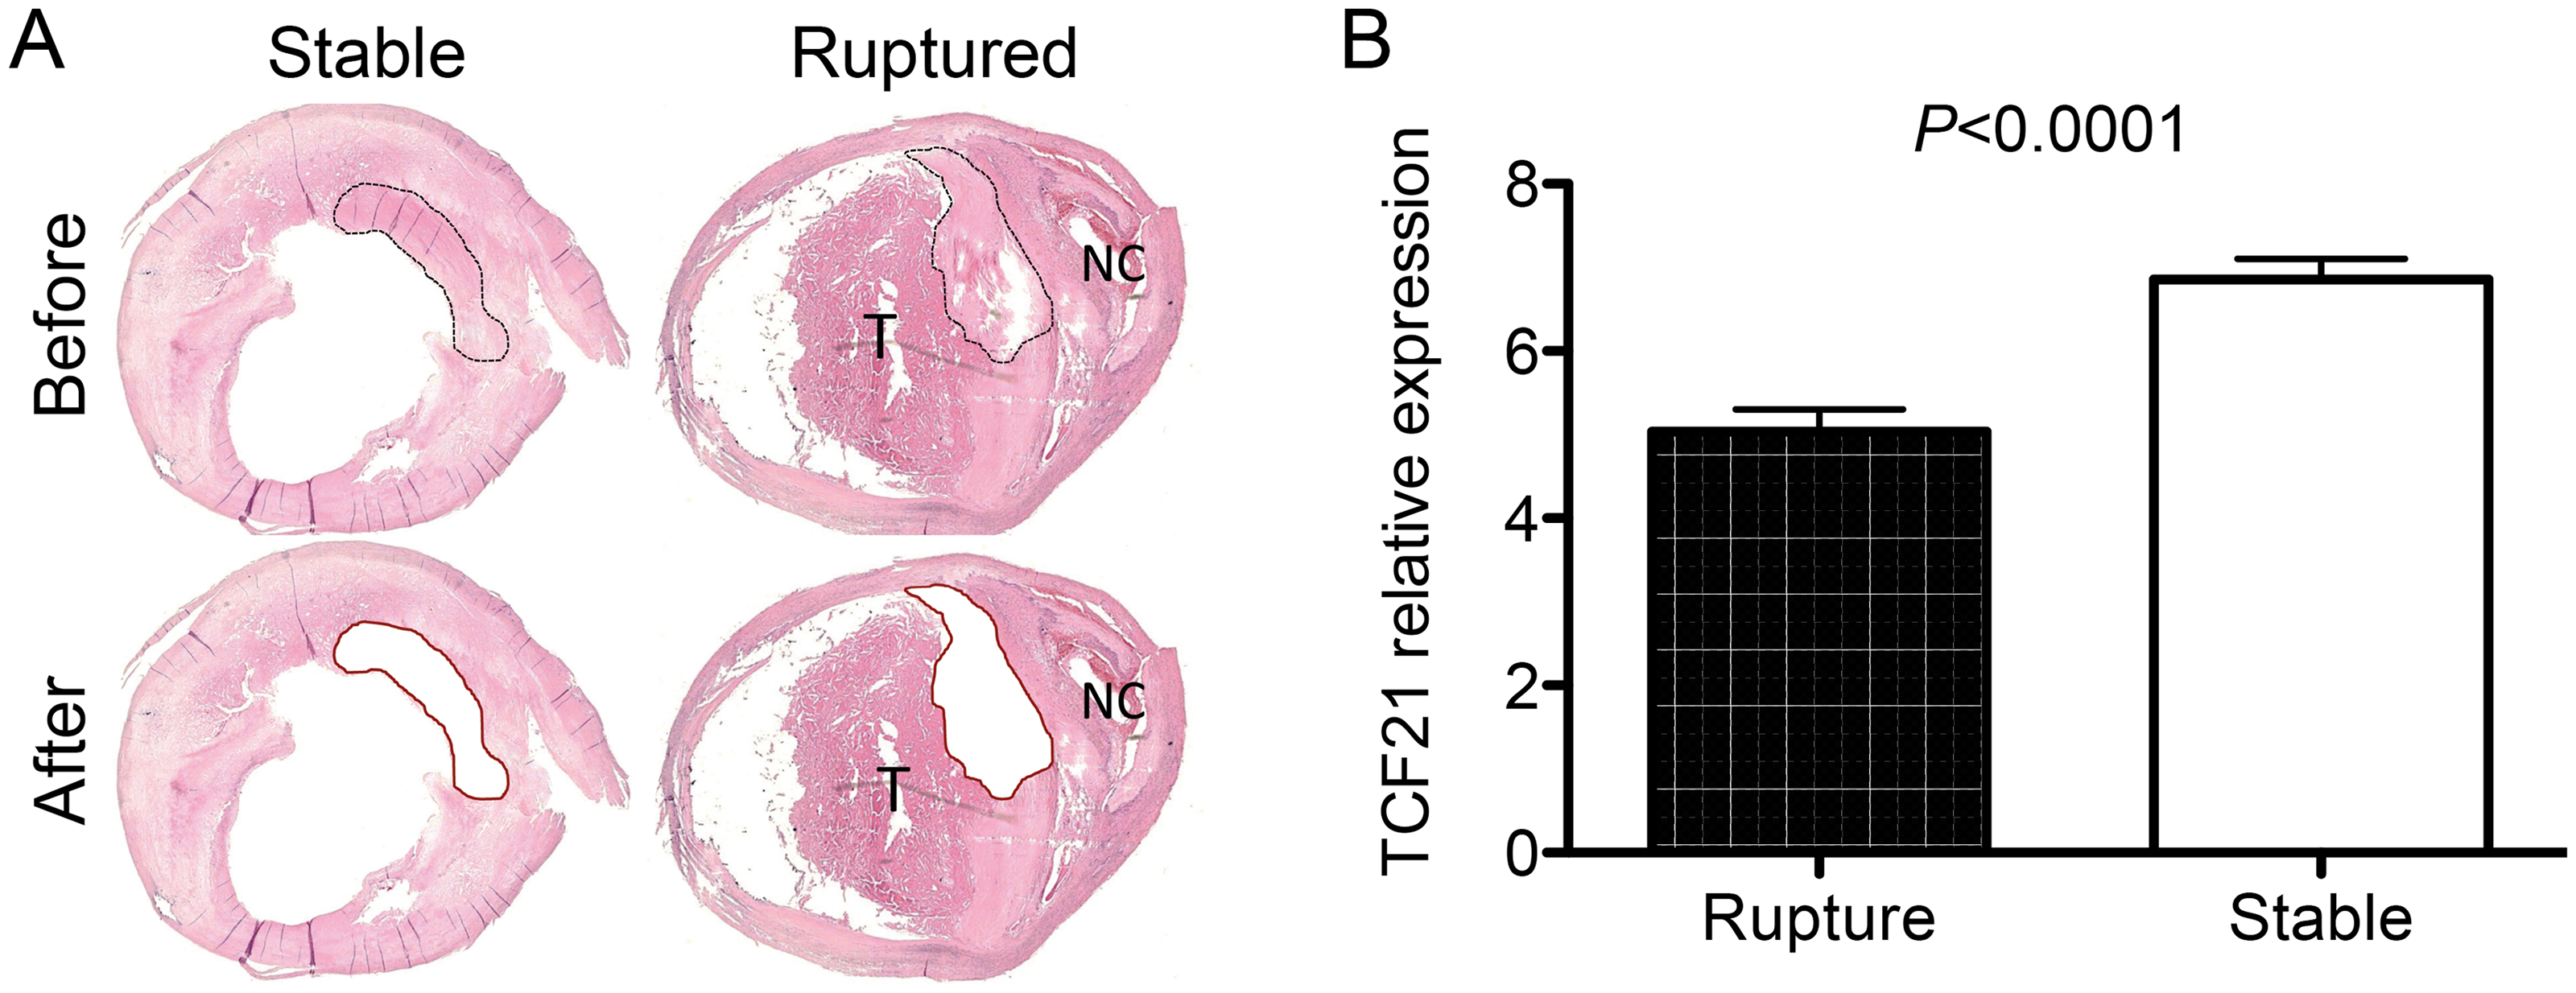 Differential <i>TCF21</i> gene expression in fibrous cap of stable vs. ruptured atherosclerotic plaque.